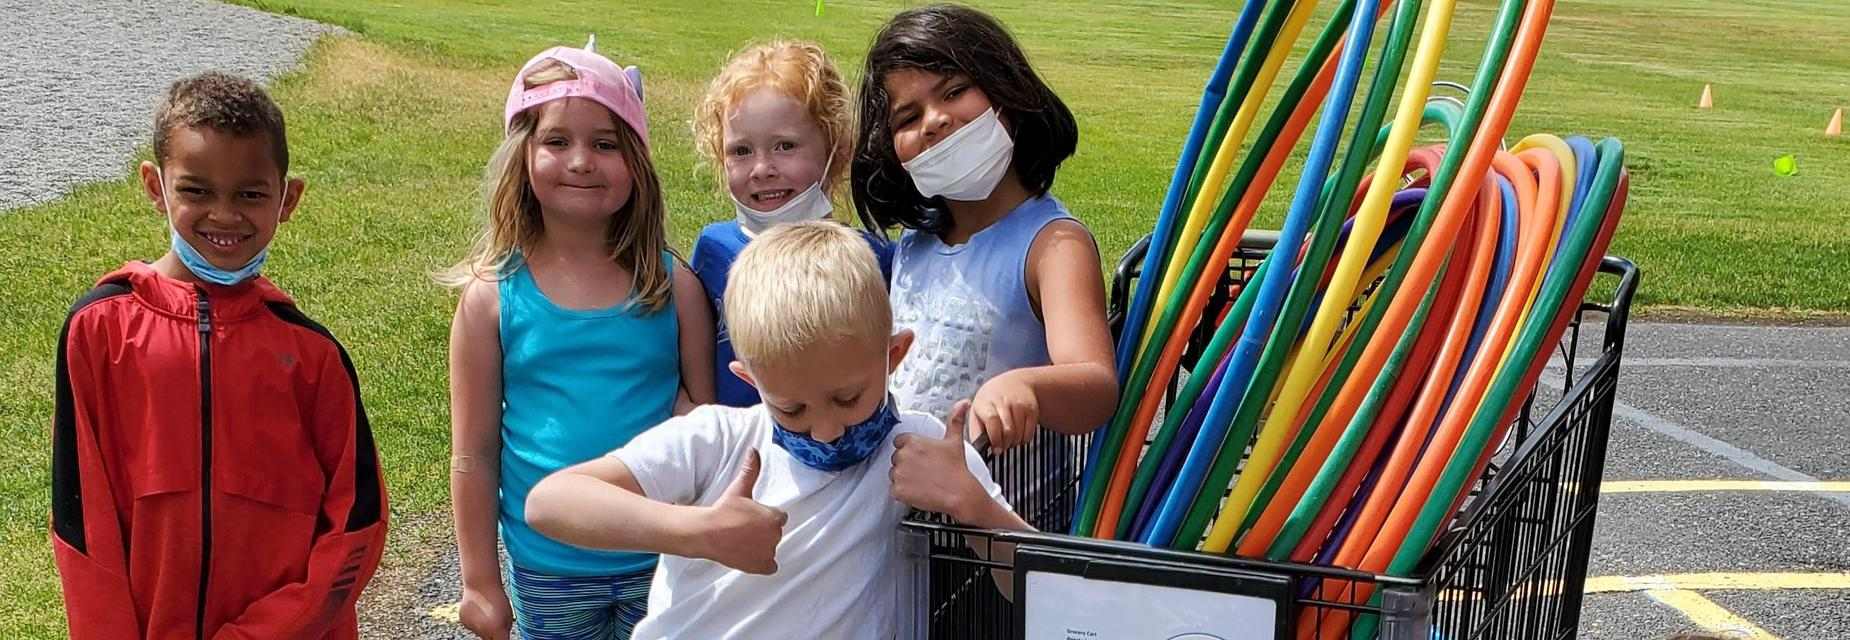 Students with recess equipment